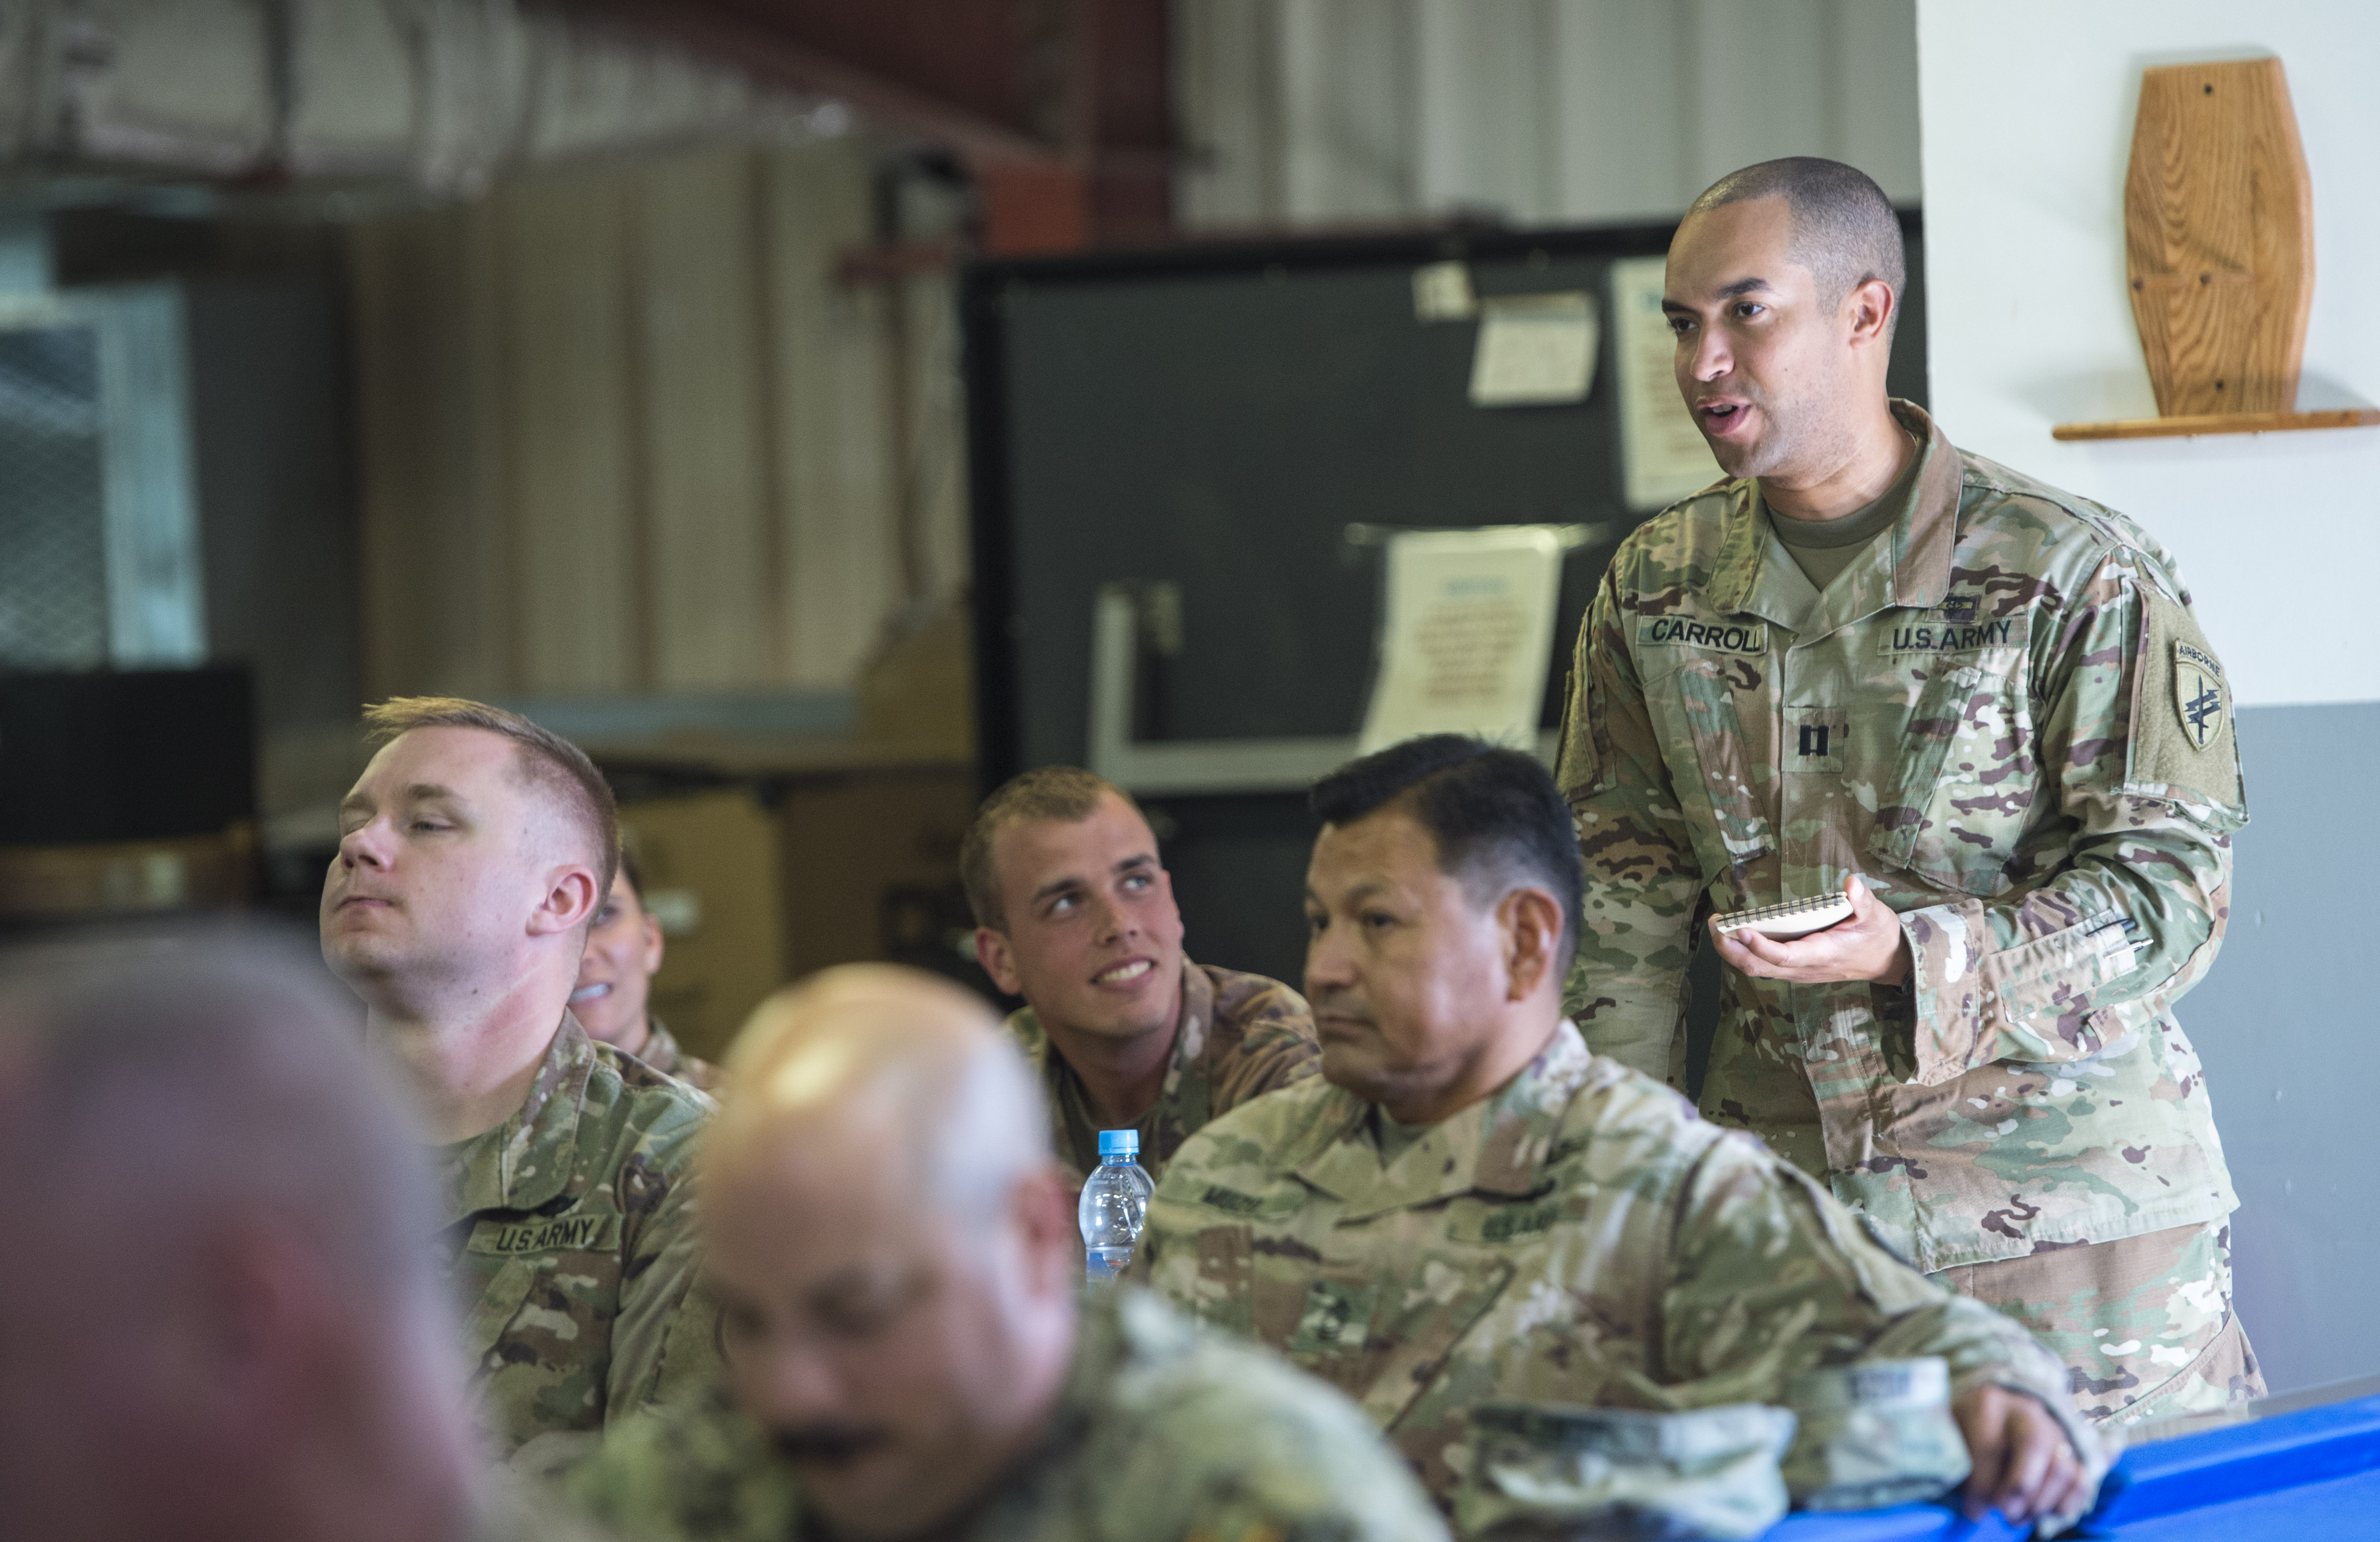 U.S. Army Capt. Sidney Carroll, with the 404th Civil Affairs Battalion, attached to Combined Joint Task Force - Horn of Africa, briefs a plan for military involvement in a simulated disaster relief operation during a U.S. Agency for International Development's Joint Humanitarian Operations Course at Camp Lemonnier, Djibouti, March 9, 2018. Members attended the second two-day course, which highlighted international disaster response, best practices, and the U.S. military's role when supporting humanitarian assistance and disaster relief operations. (U.S. Air Force photo by Staff Sgt. Timothy Moore)